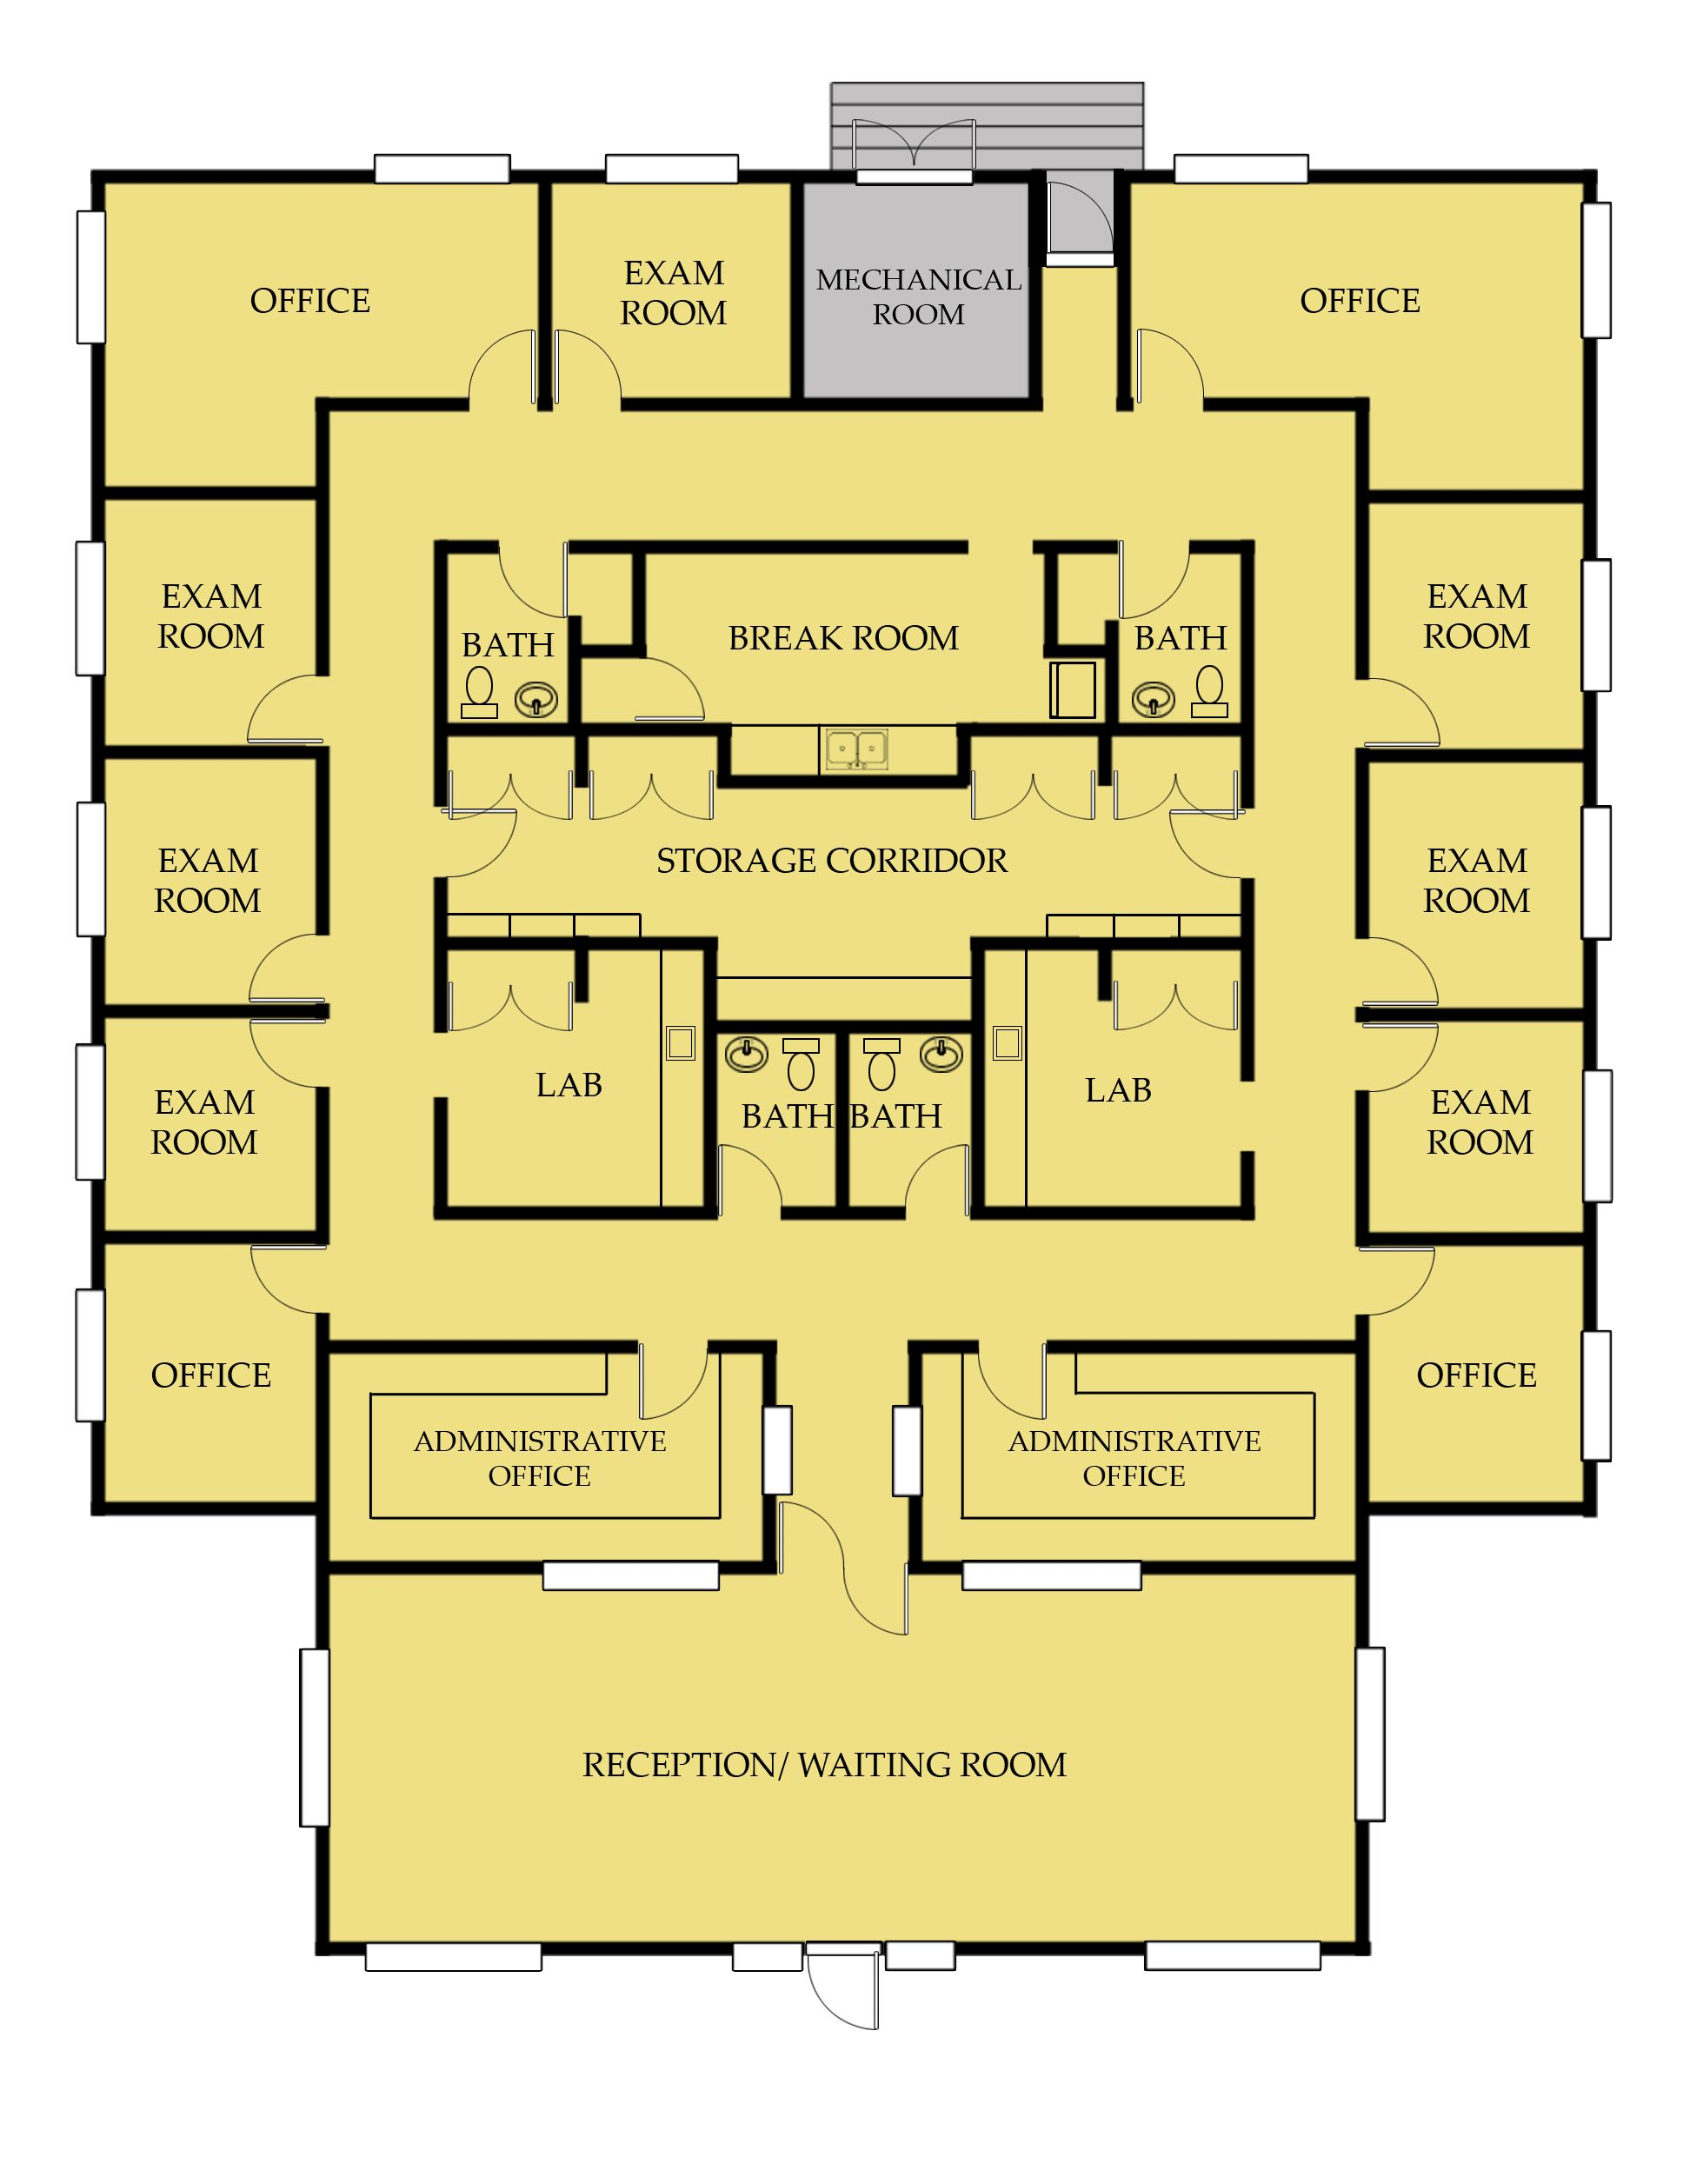 Office Floor Plan Designer Image Review